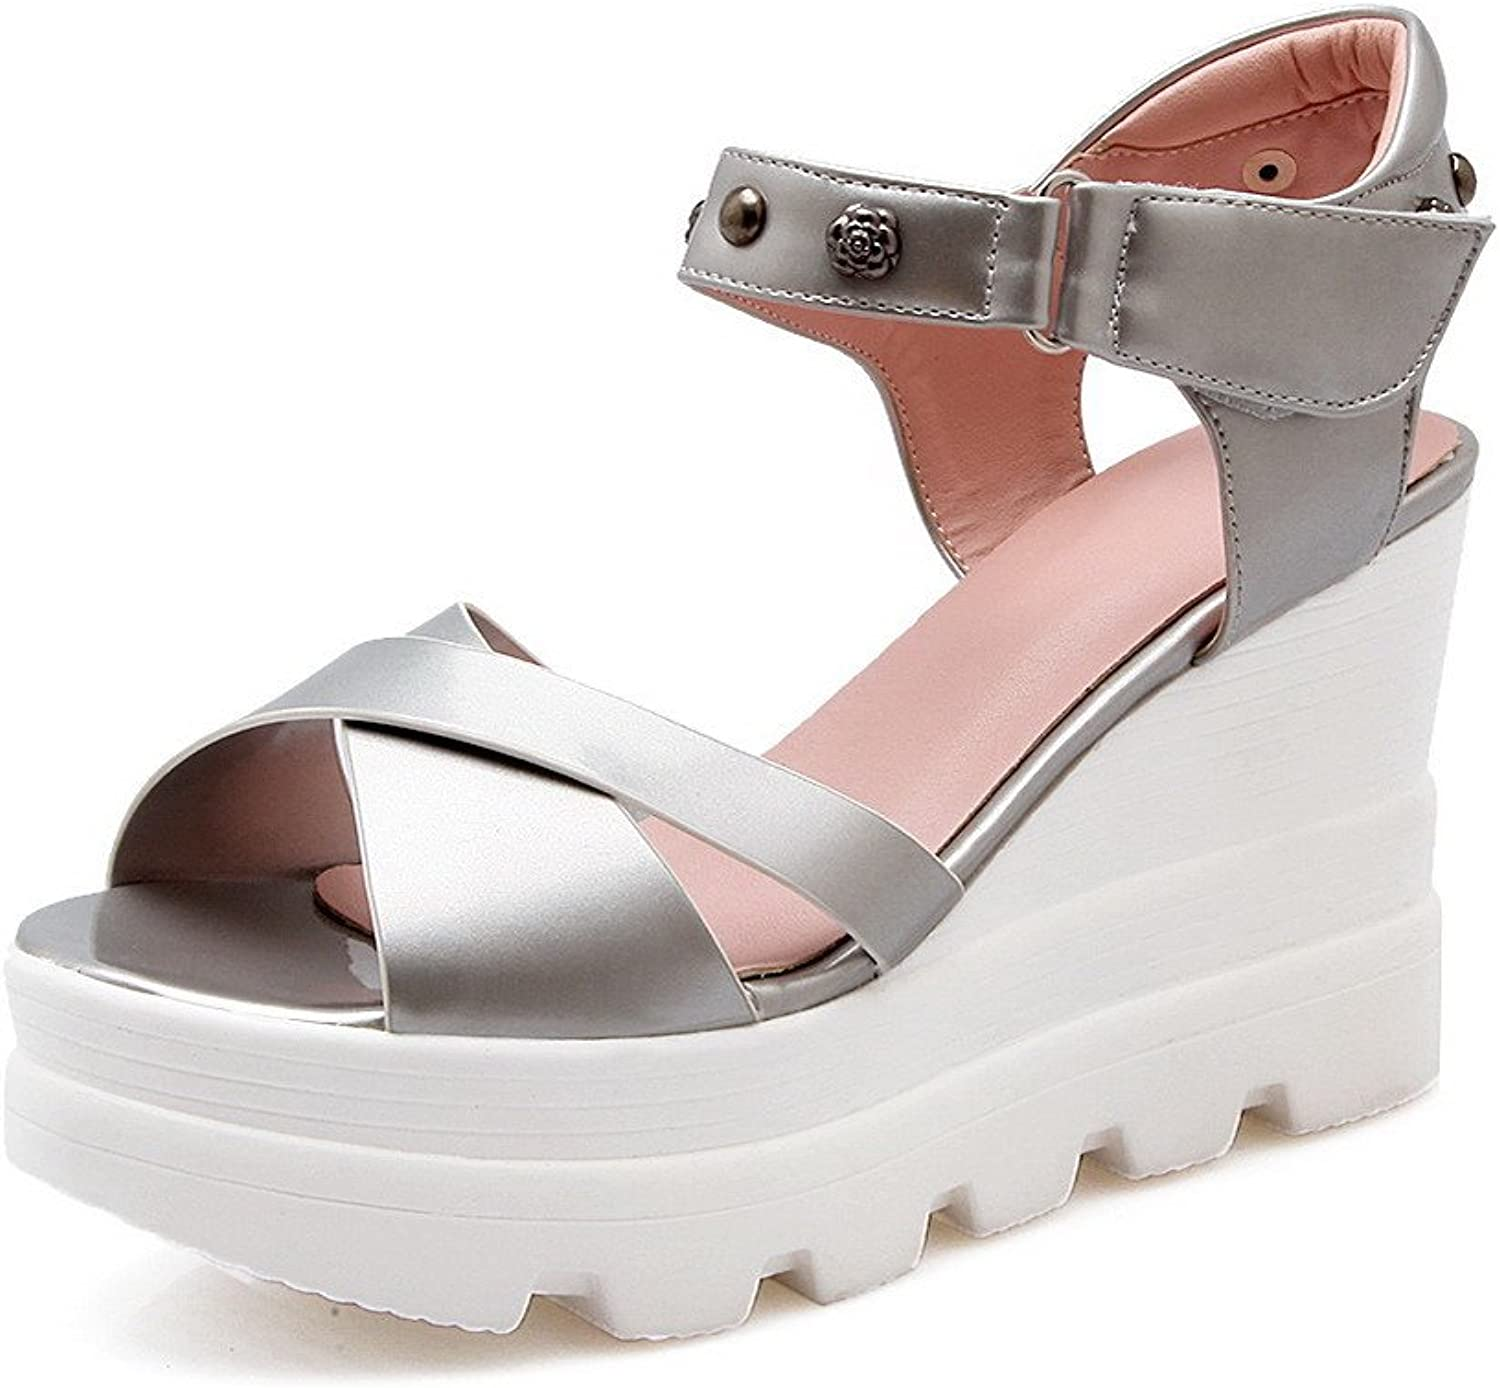 WeenFashion Women's Hook and Loop Open Toe High Heels Patent Leather Solid Sandals